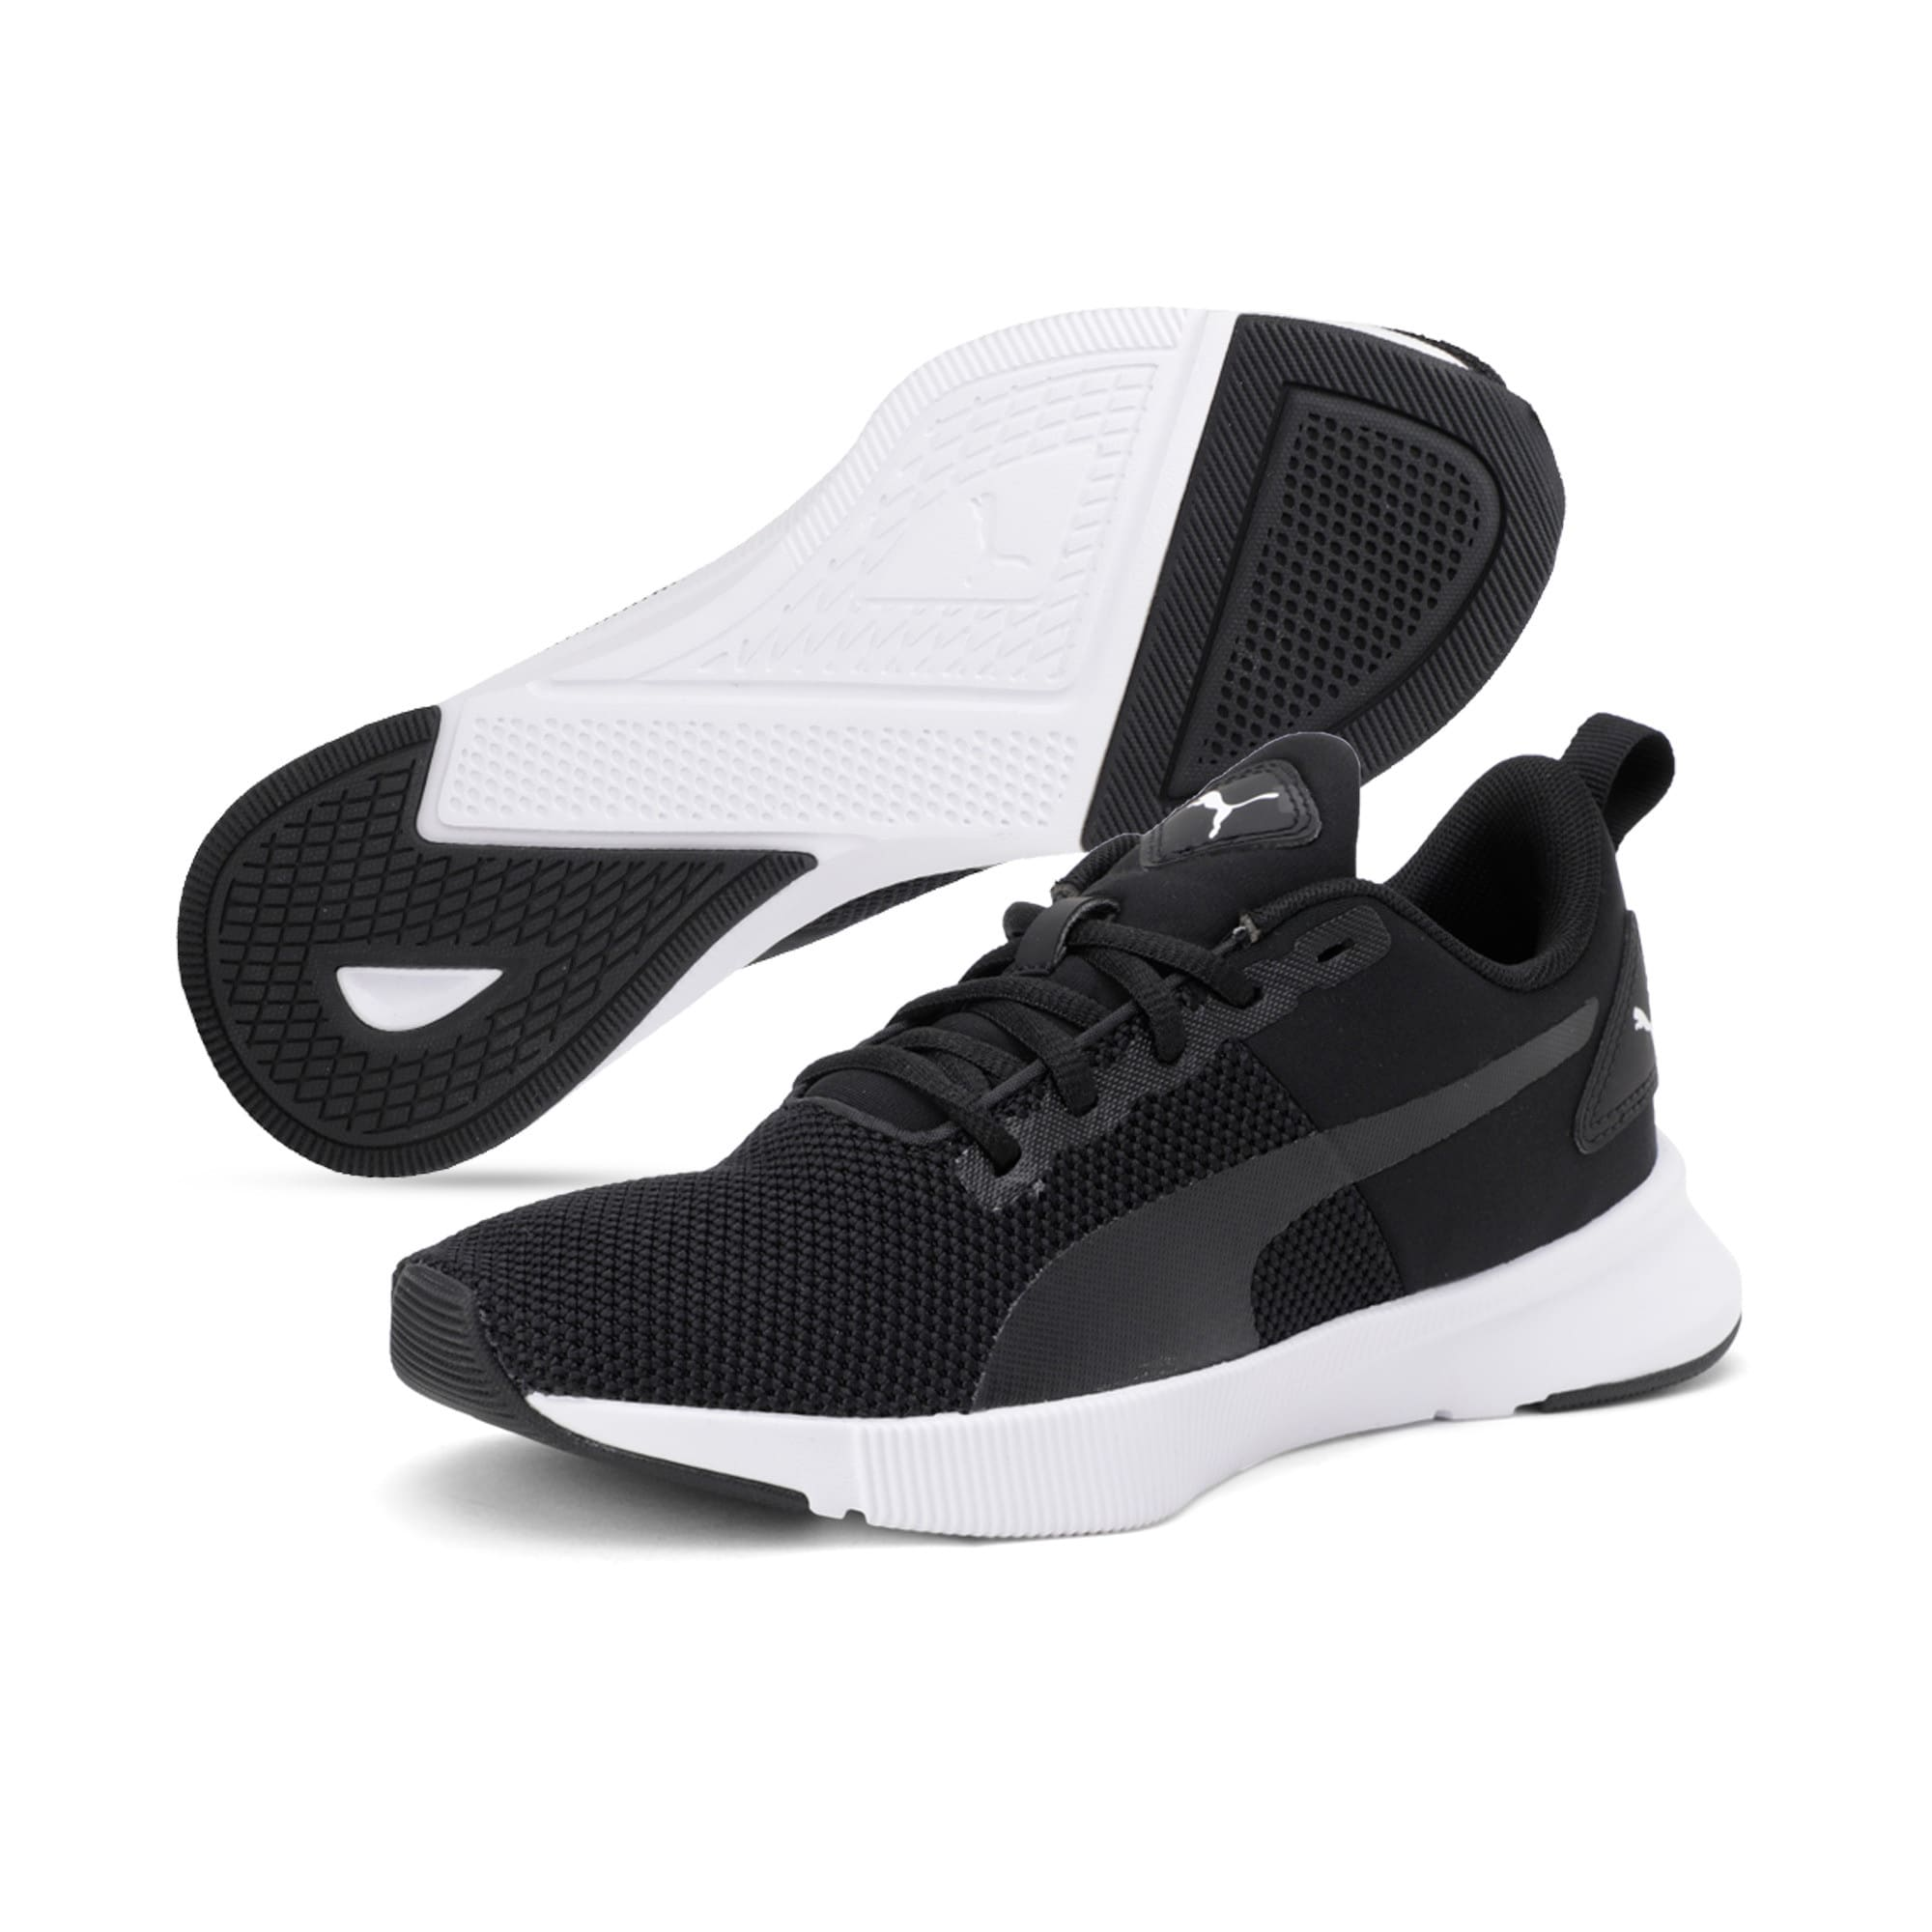 Thumbnail 2 of Flyer Runner Youth Trainers, Puma Black-Puma White, medium-IND